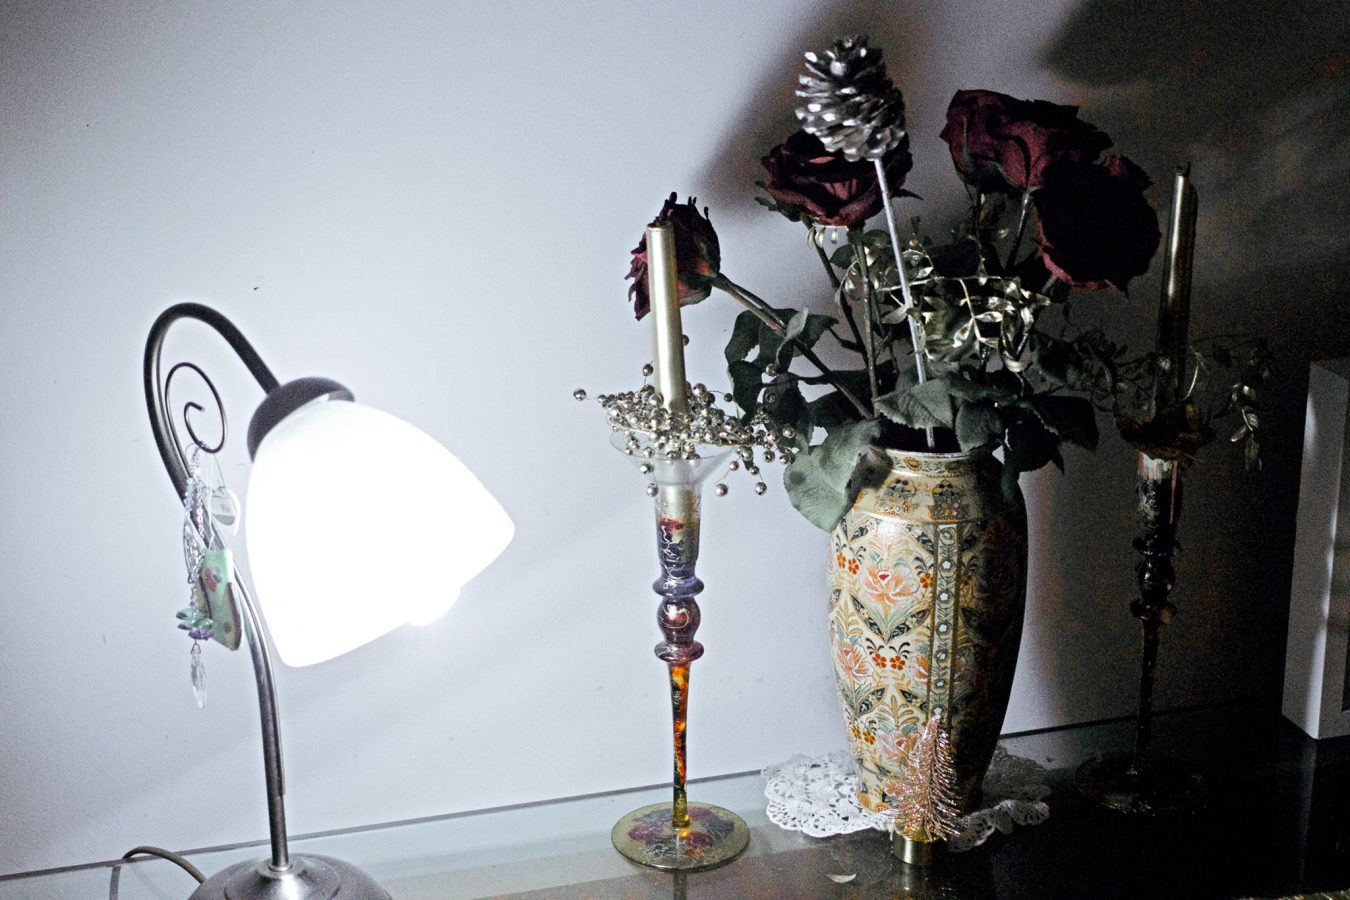 Just because. Table lamp, candle vase